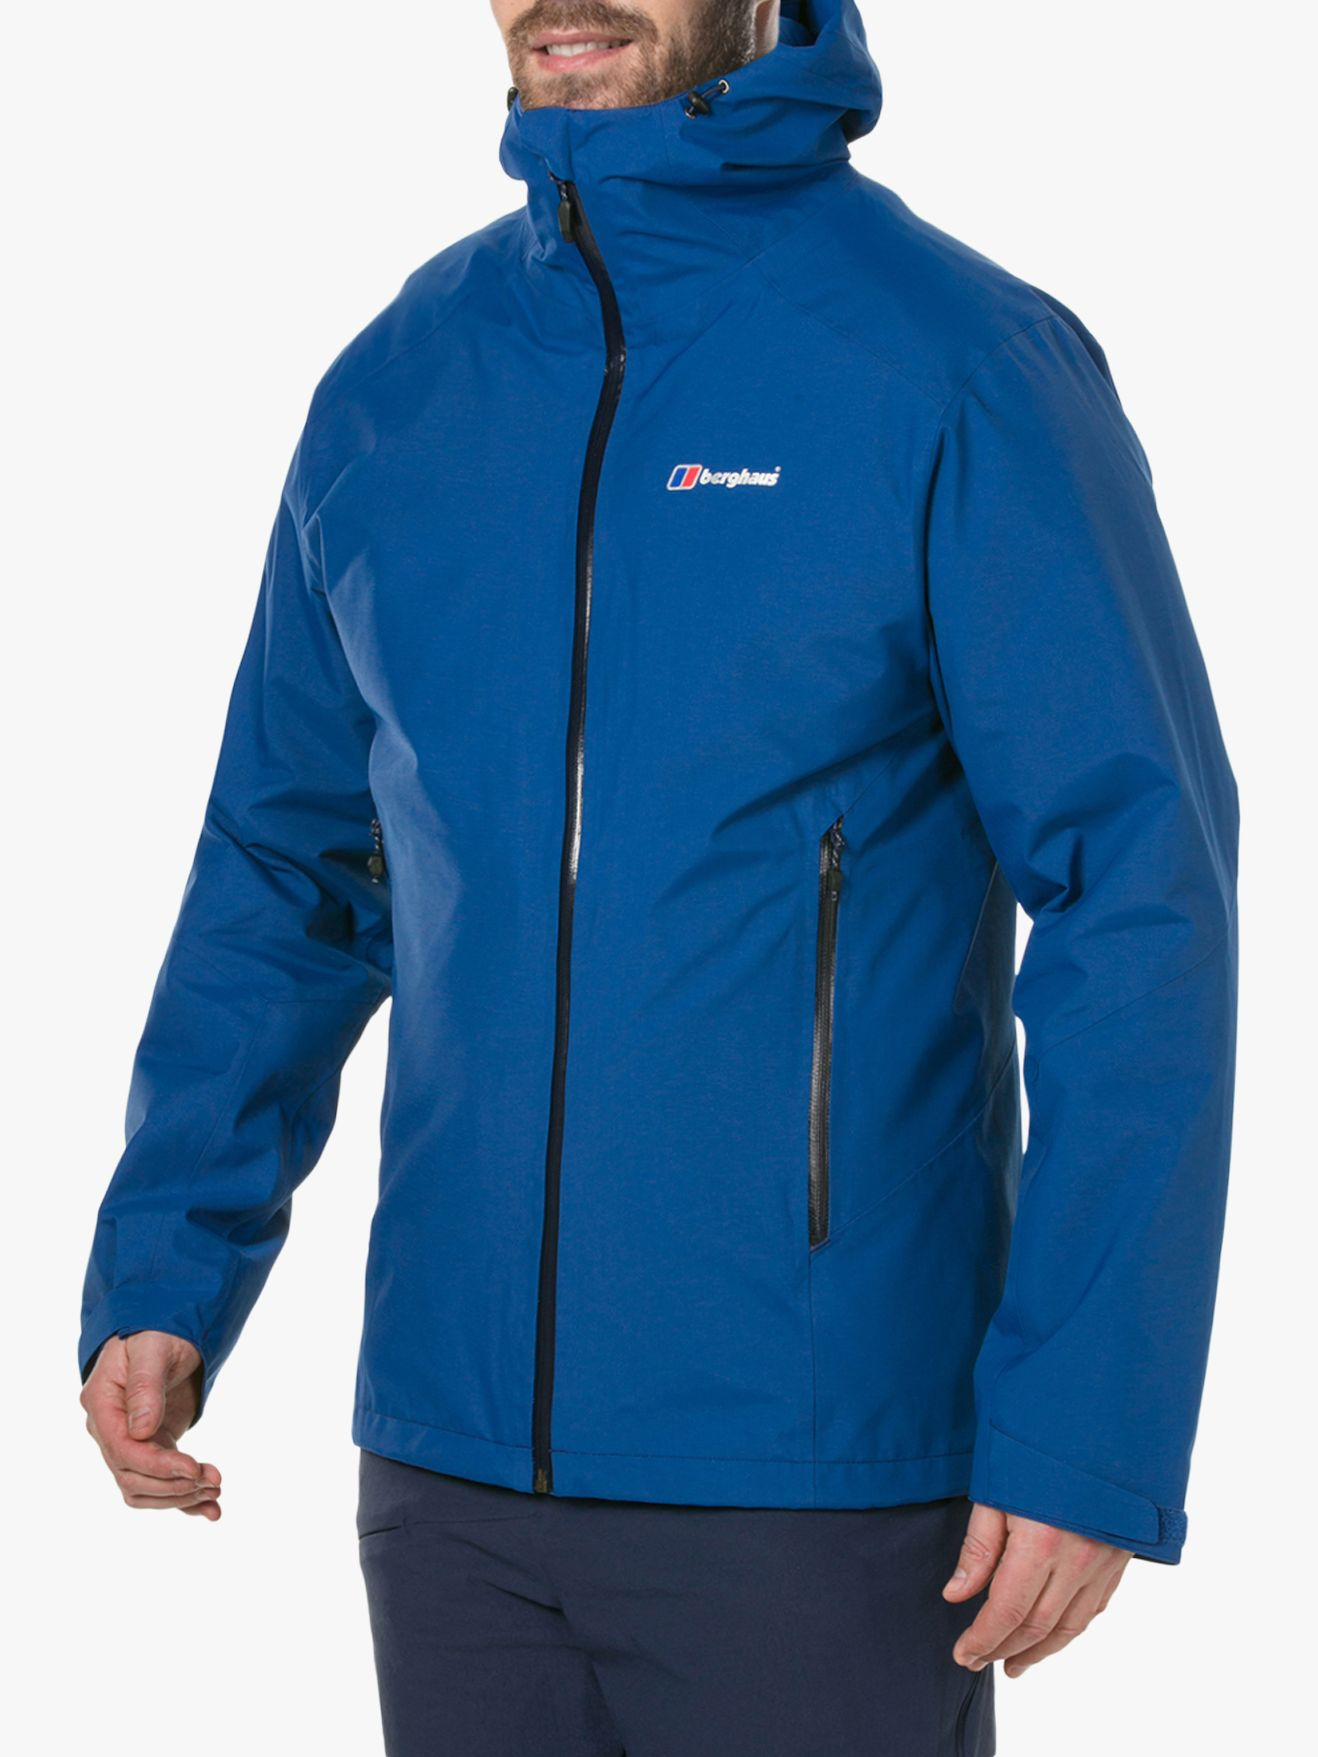 Berghaus Berghaus Ridgemaster 3-in-1 Men's Waterproof Gore-Tex Jacket, Deep Water